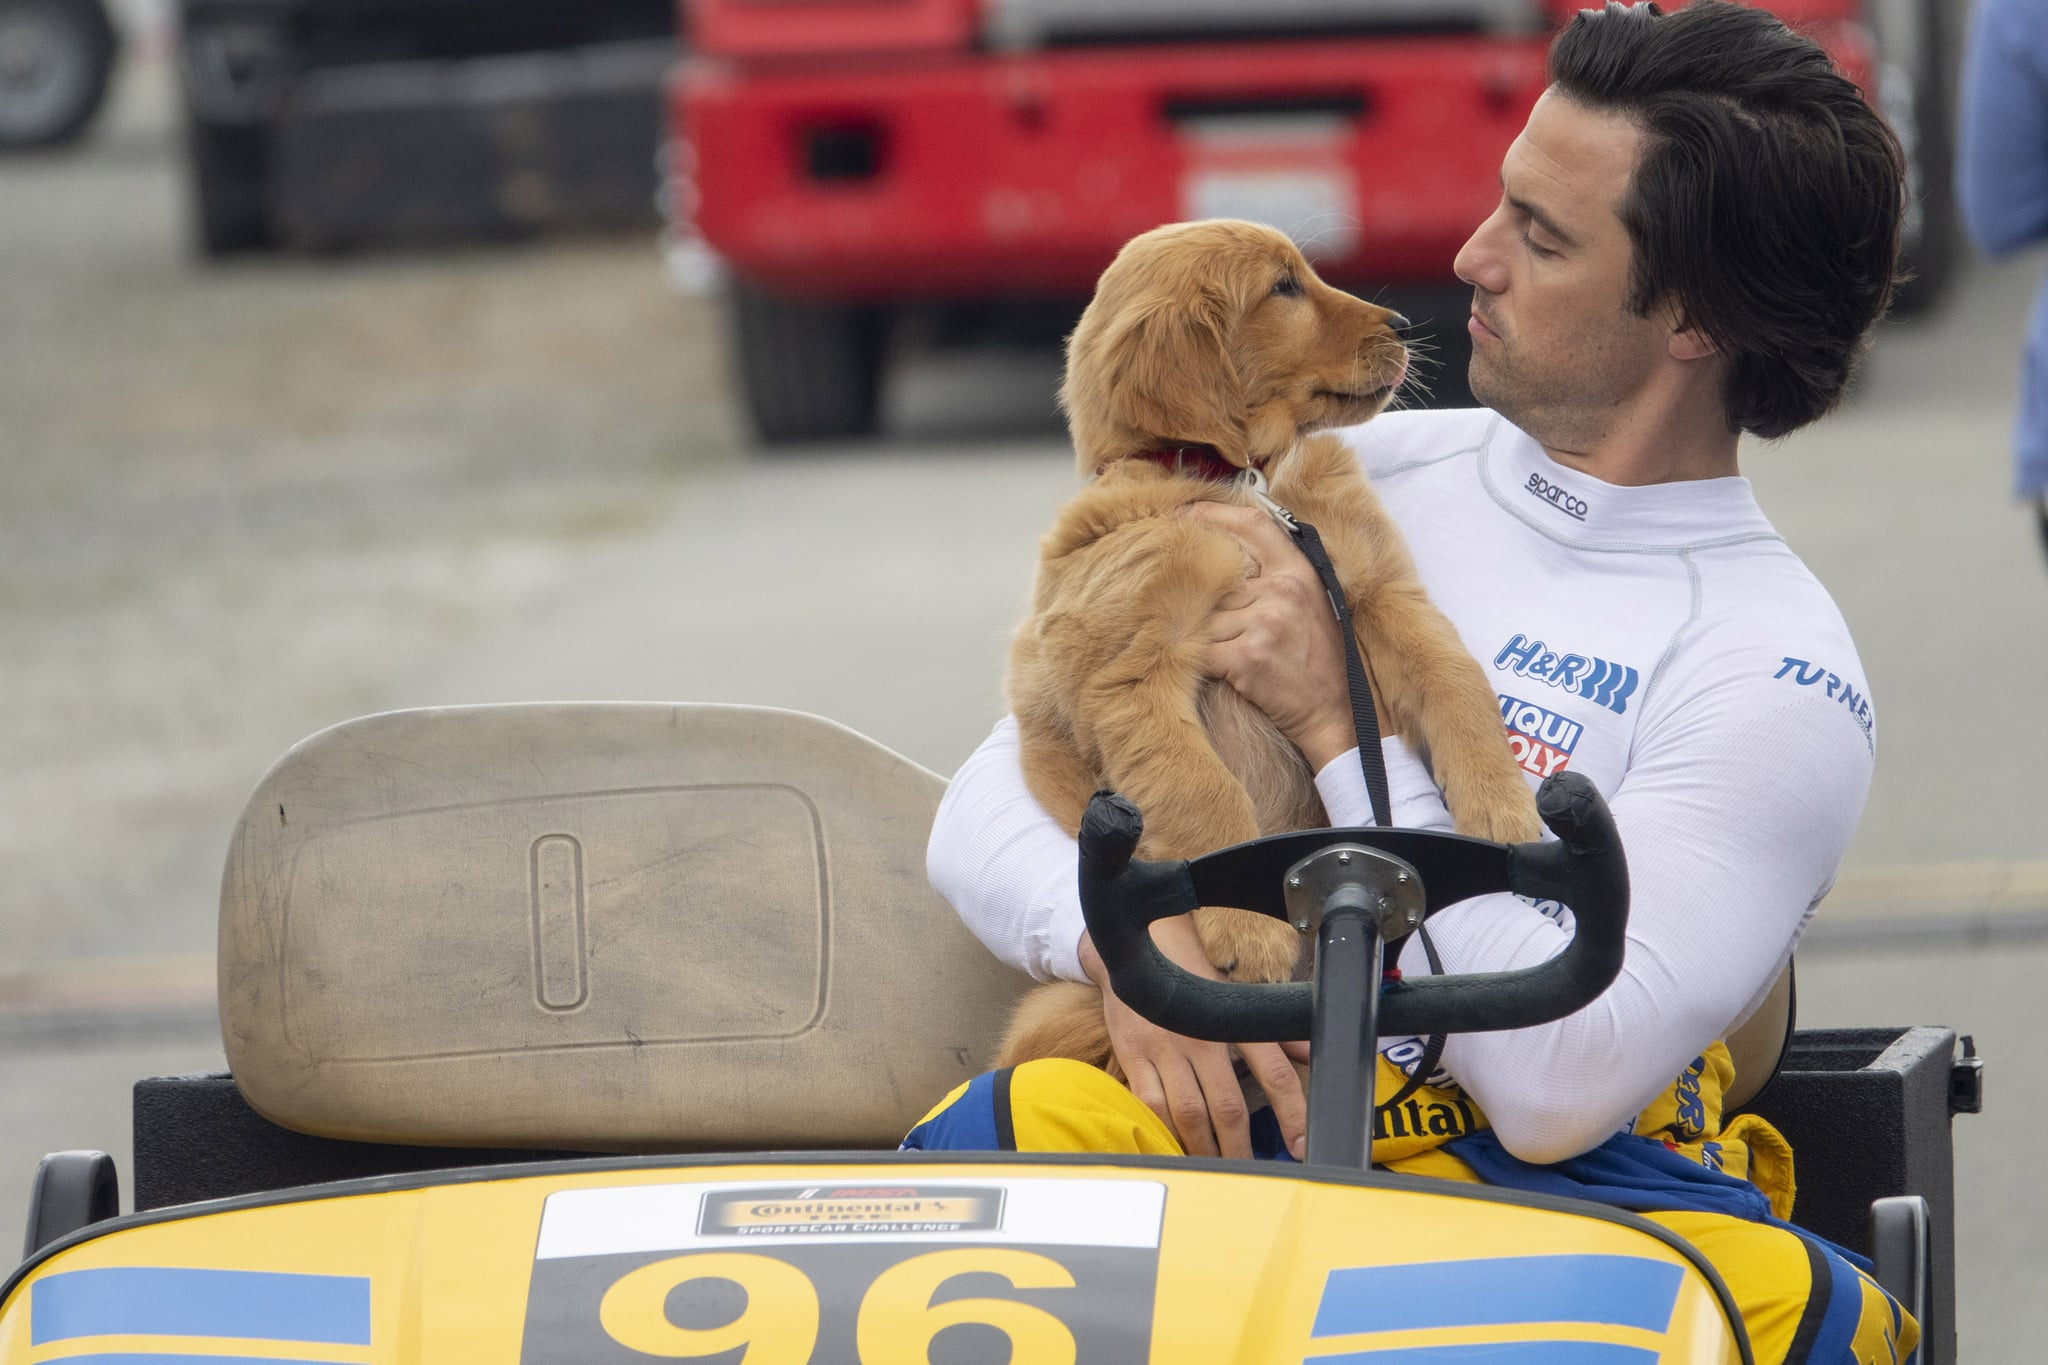 Milo Ventimiglia, Amanda Seyfried, and Adorable Dogs Are Coming to POPSUGAR Play/Ground — Need We Say More?